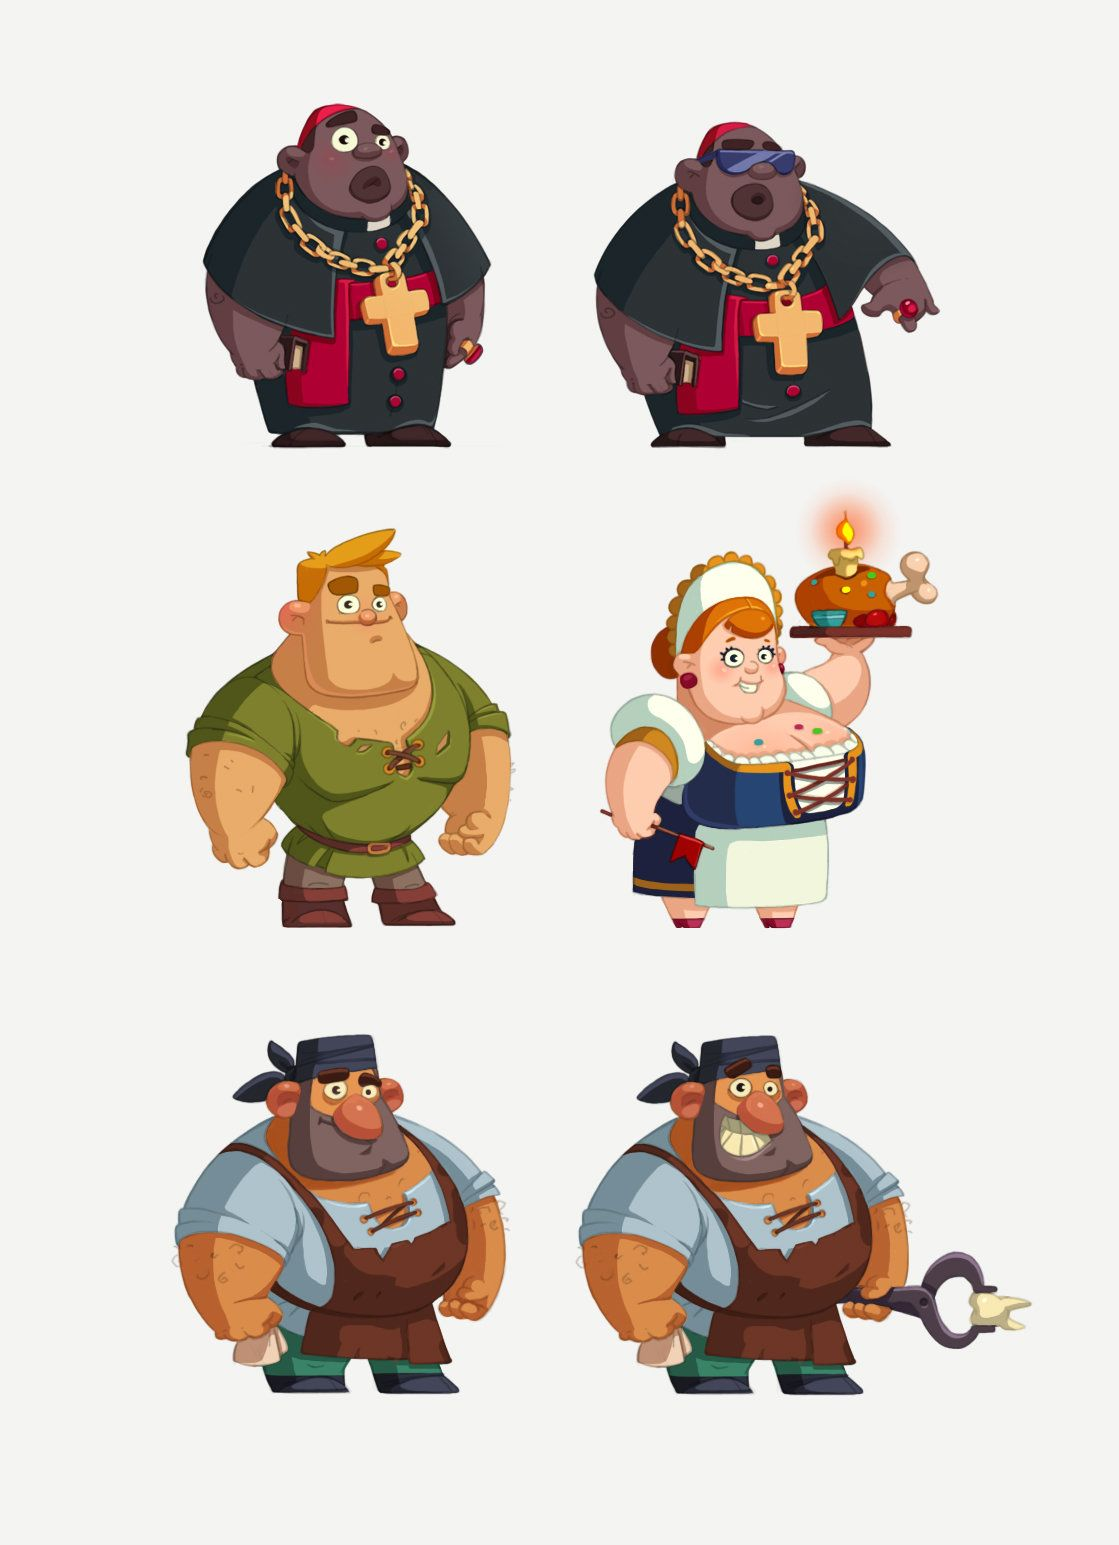 Design A Cartoon Character Game : Design of characters for mobile game katya kotyaka on